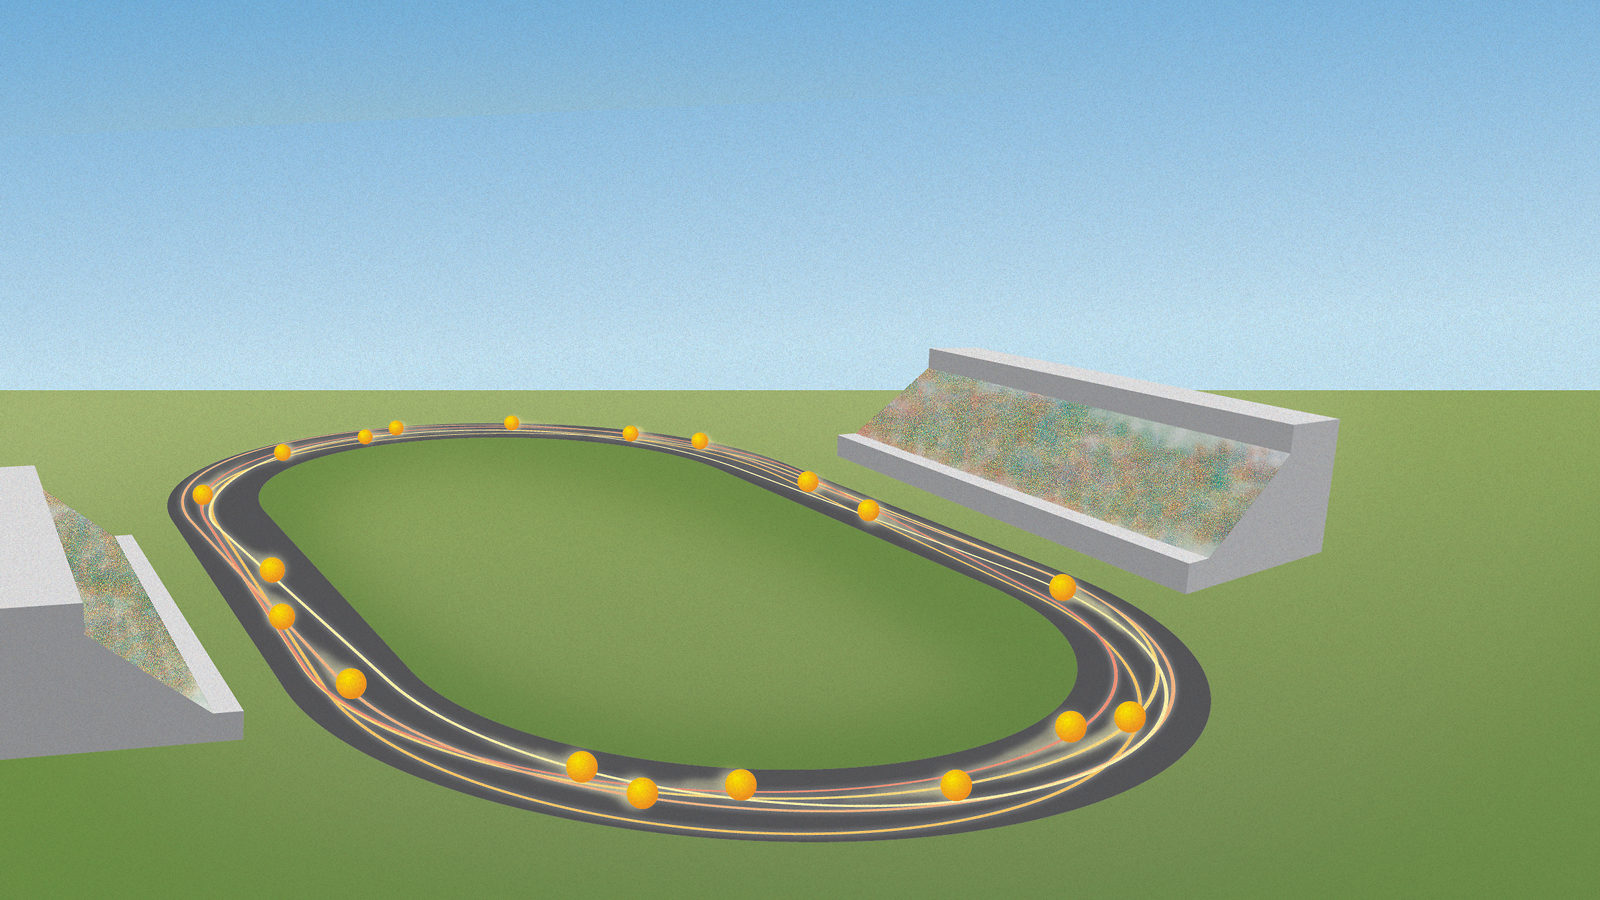 An illustration of particles racing around a track